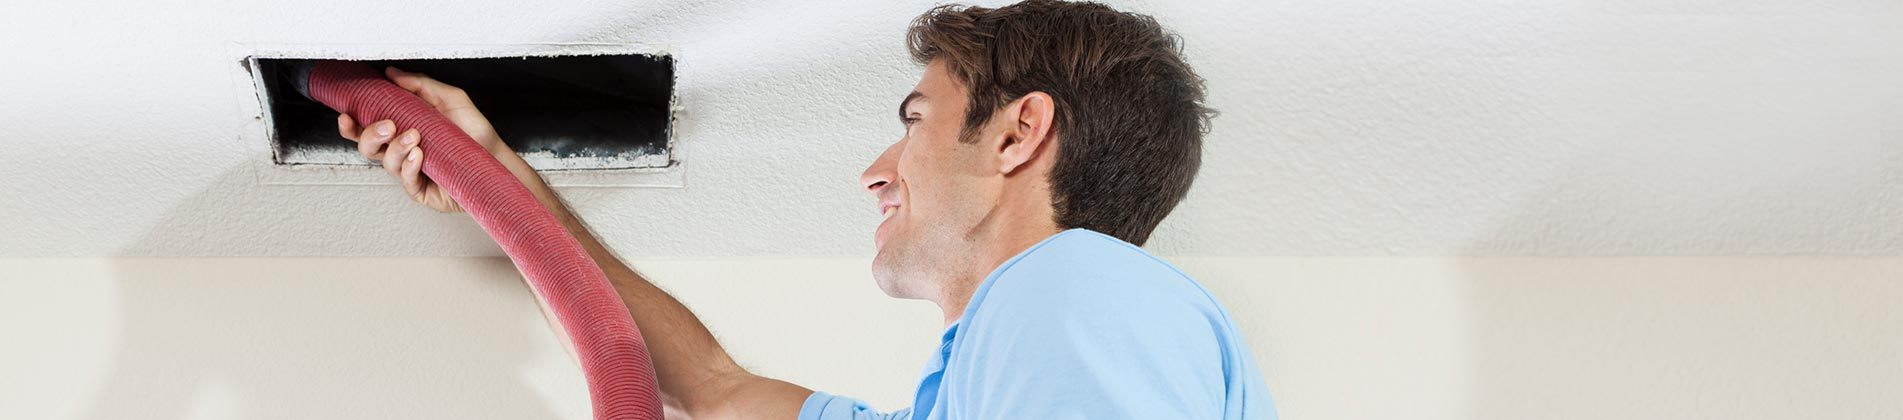 Duct sealing, Cleaning & Design Contractor in Central Florida